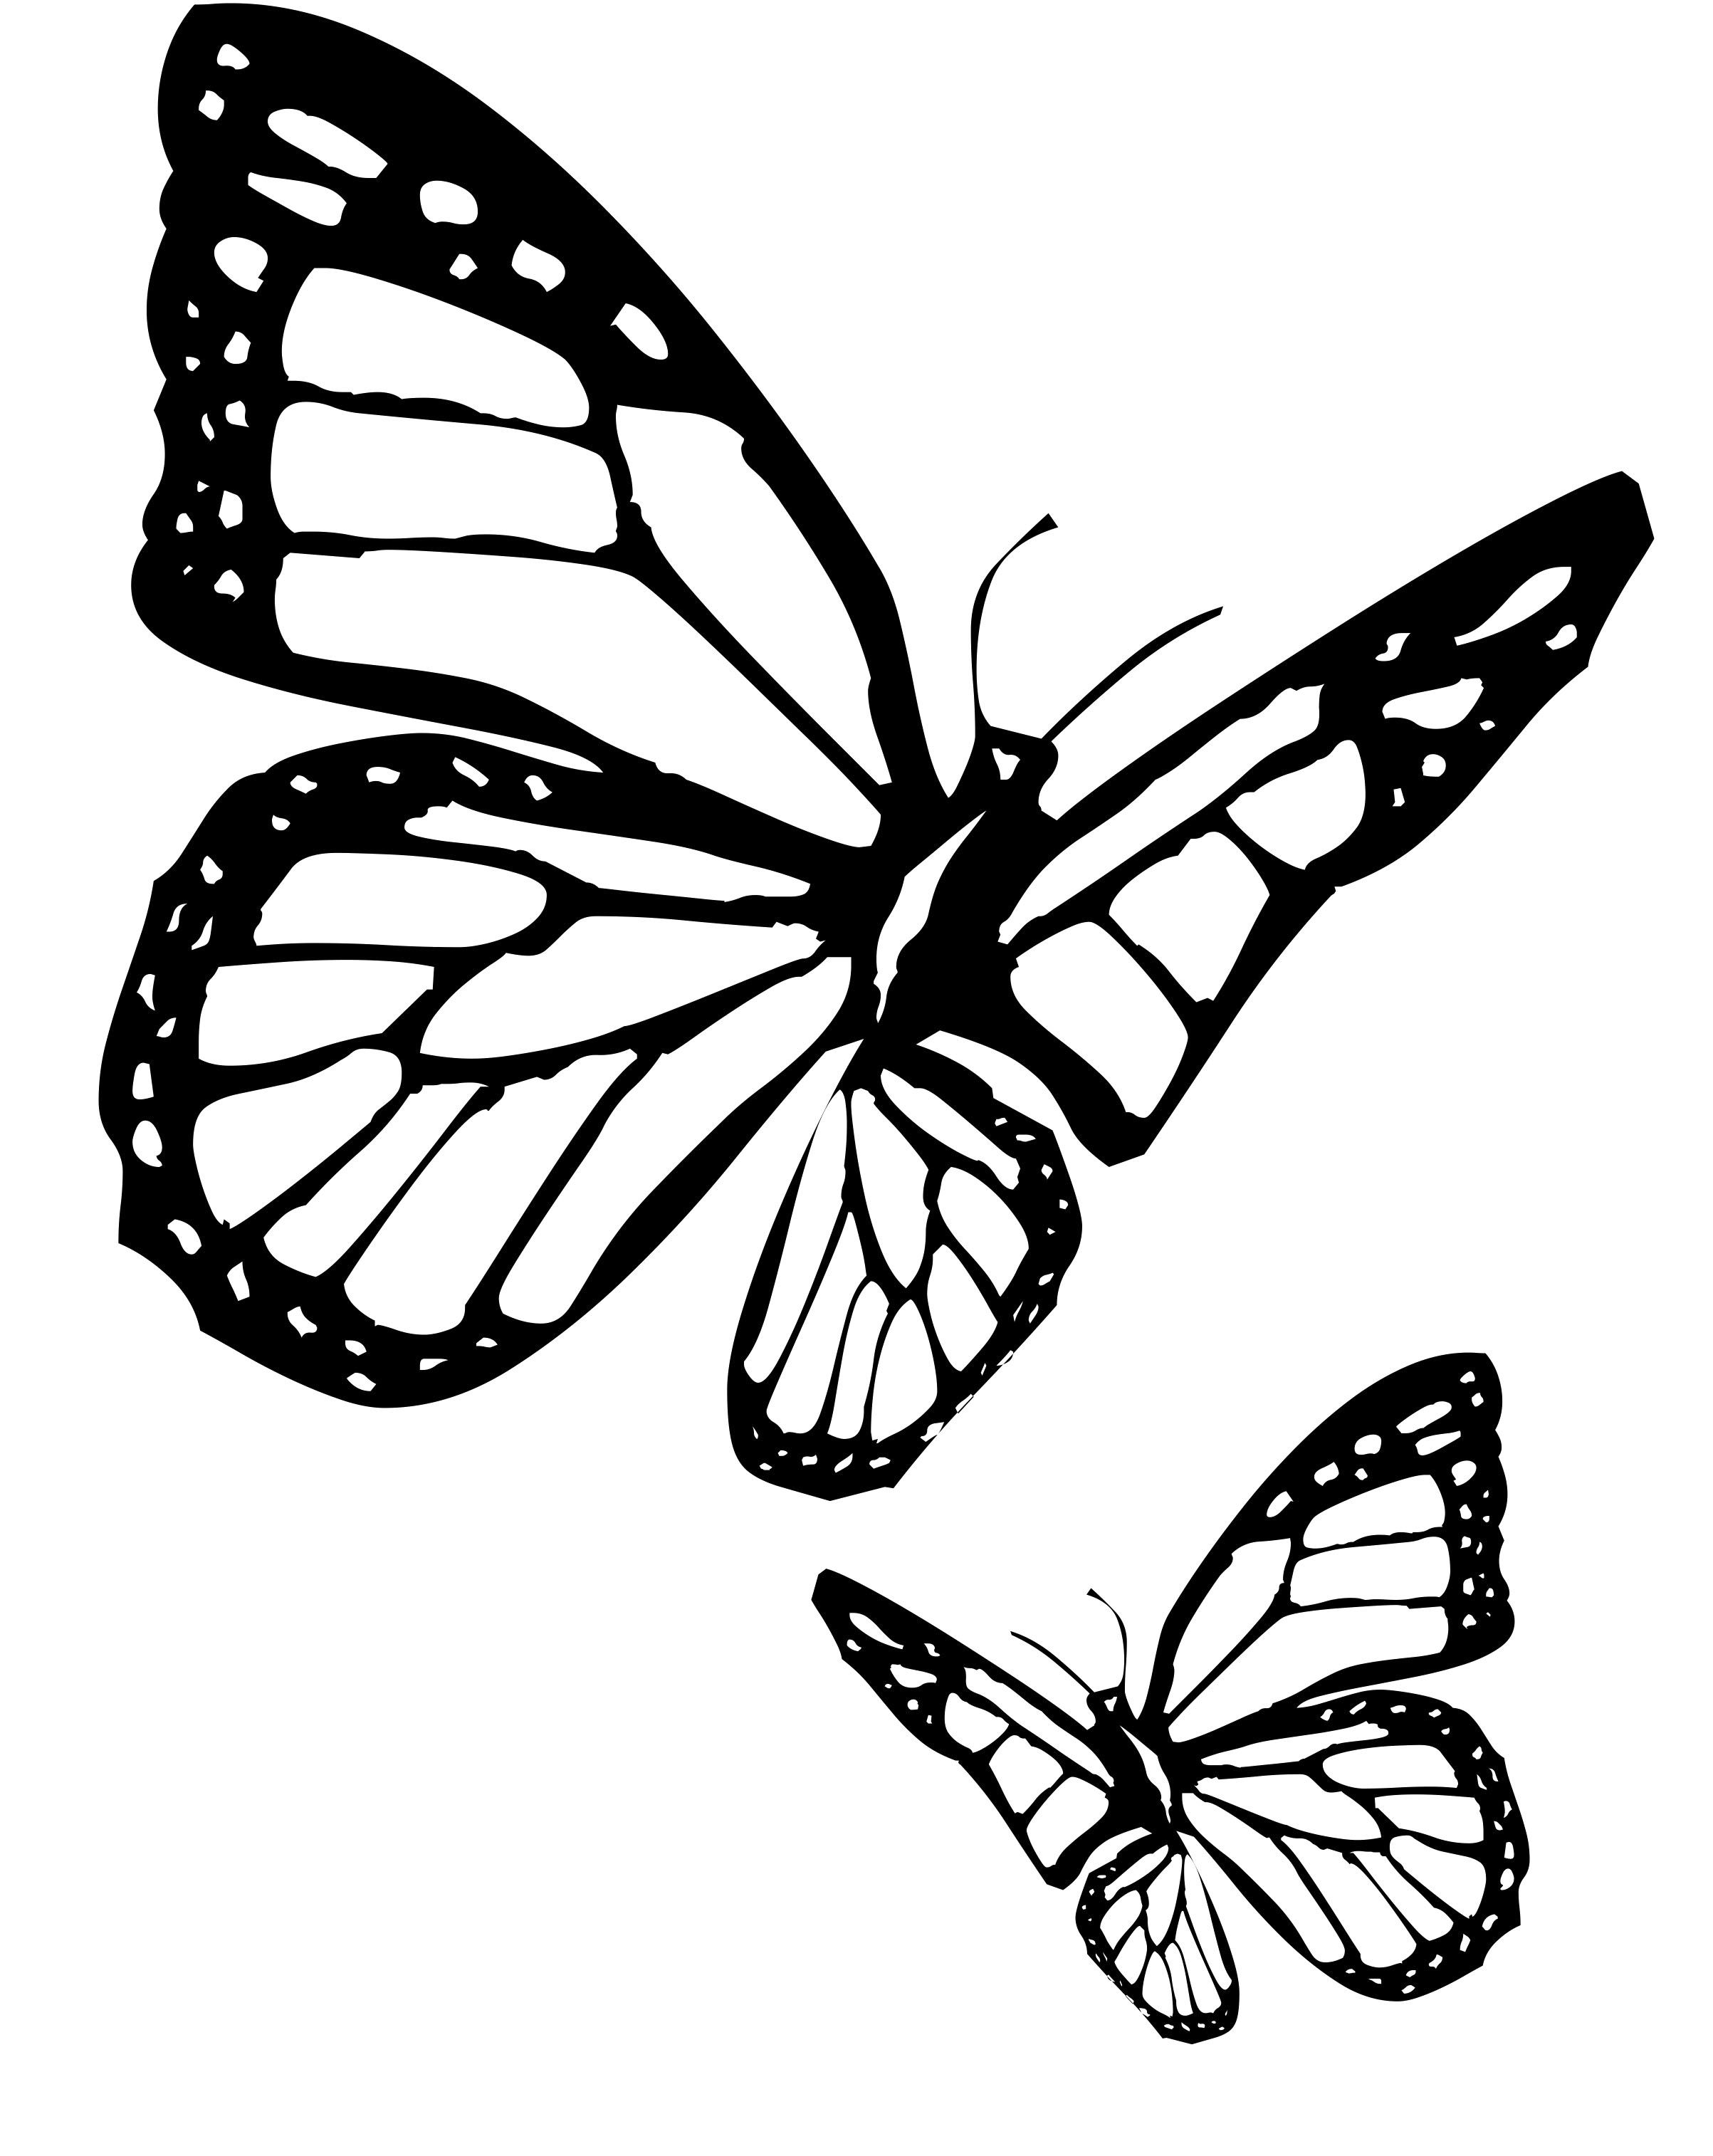 coloring pages prunes - photo#41